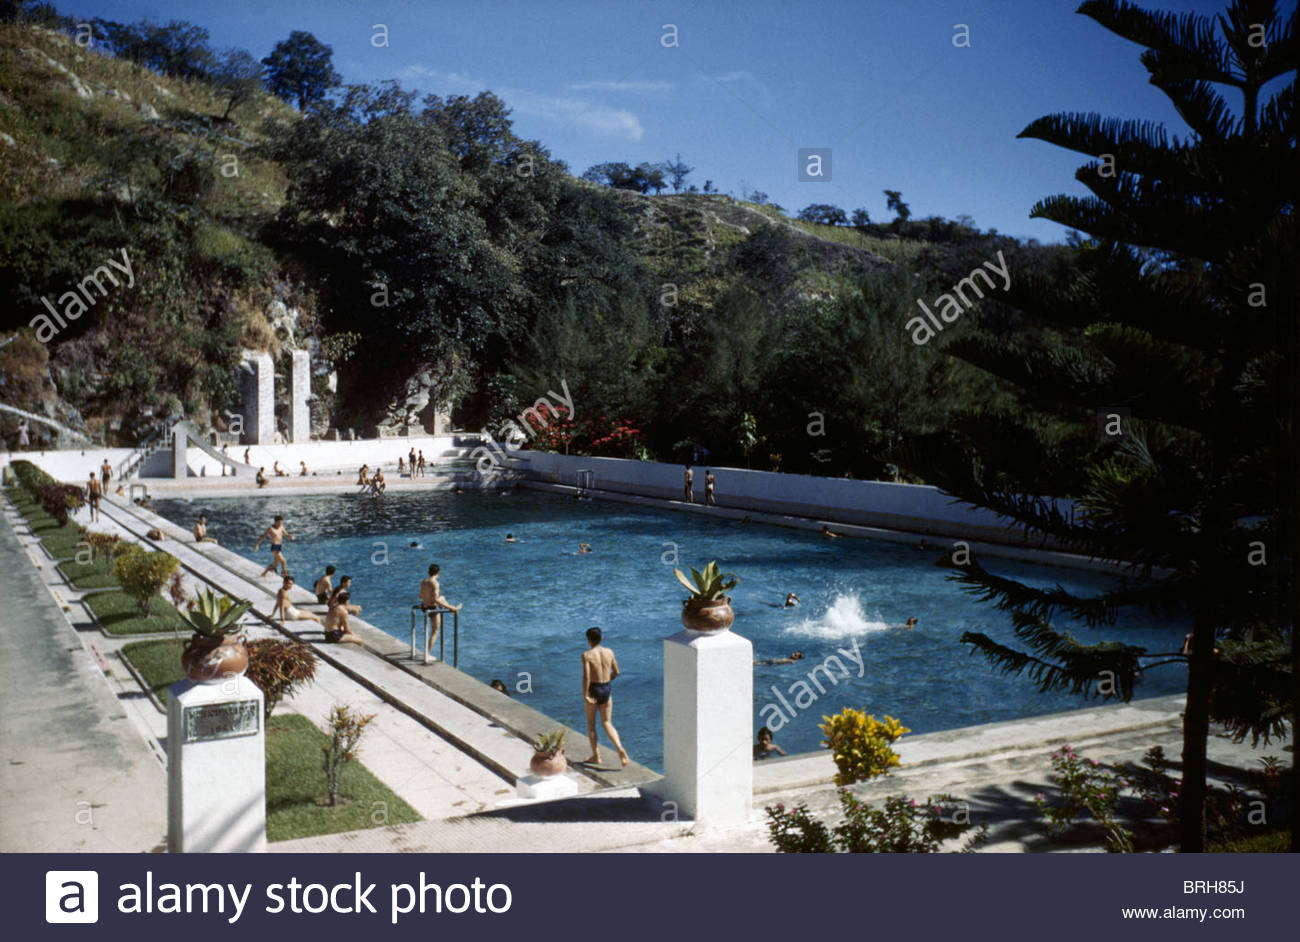 People Swim In A Public Swimming Pool Fed By Warm Natural Springs